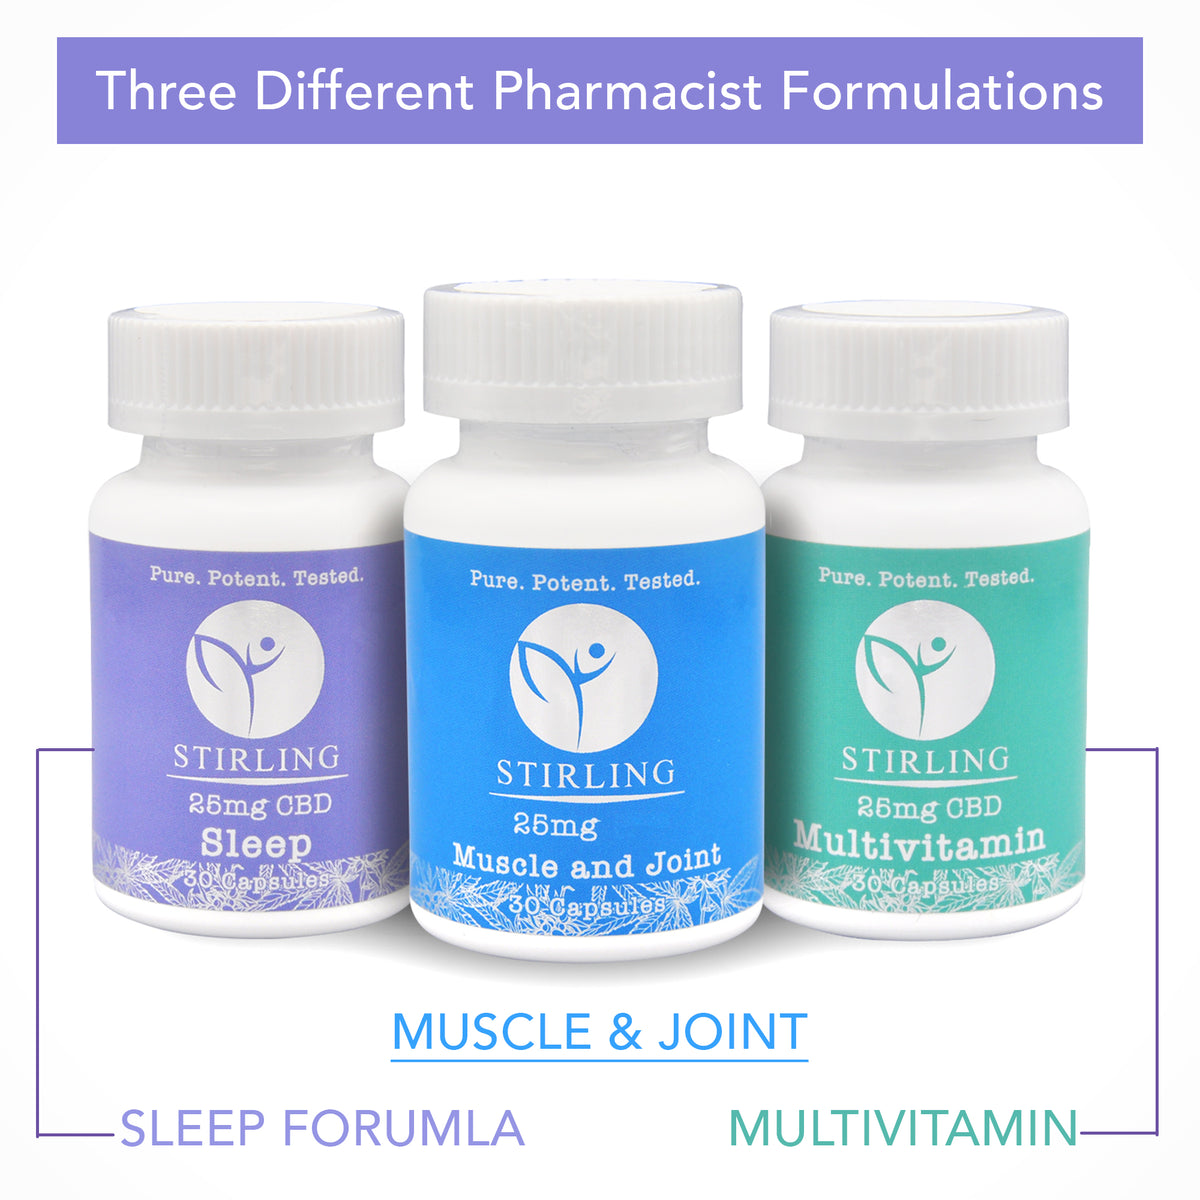 750mg CBD Capsules - Muscle & Joint - Multivitamin - Sleep